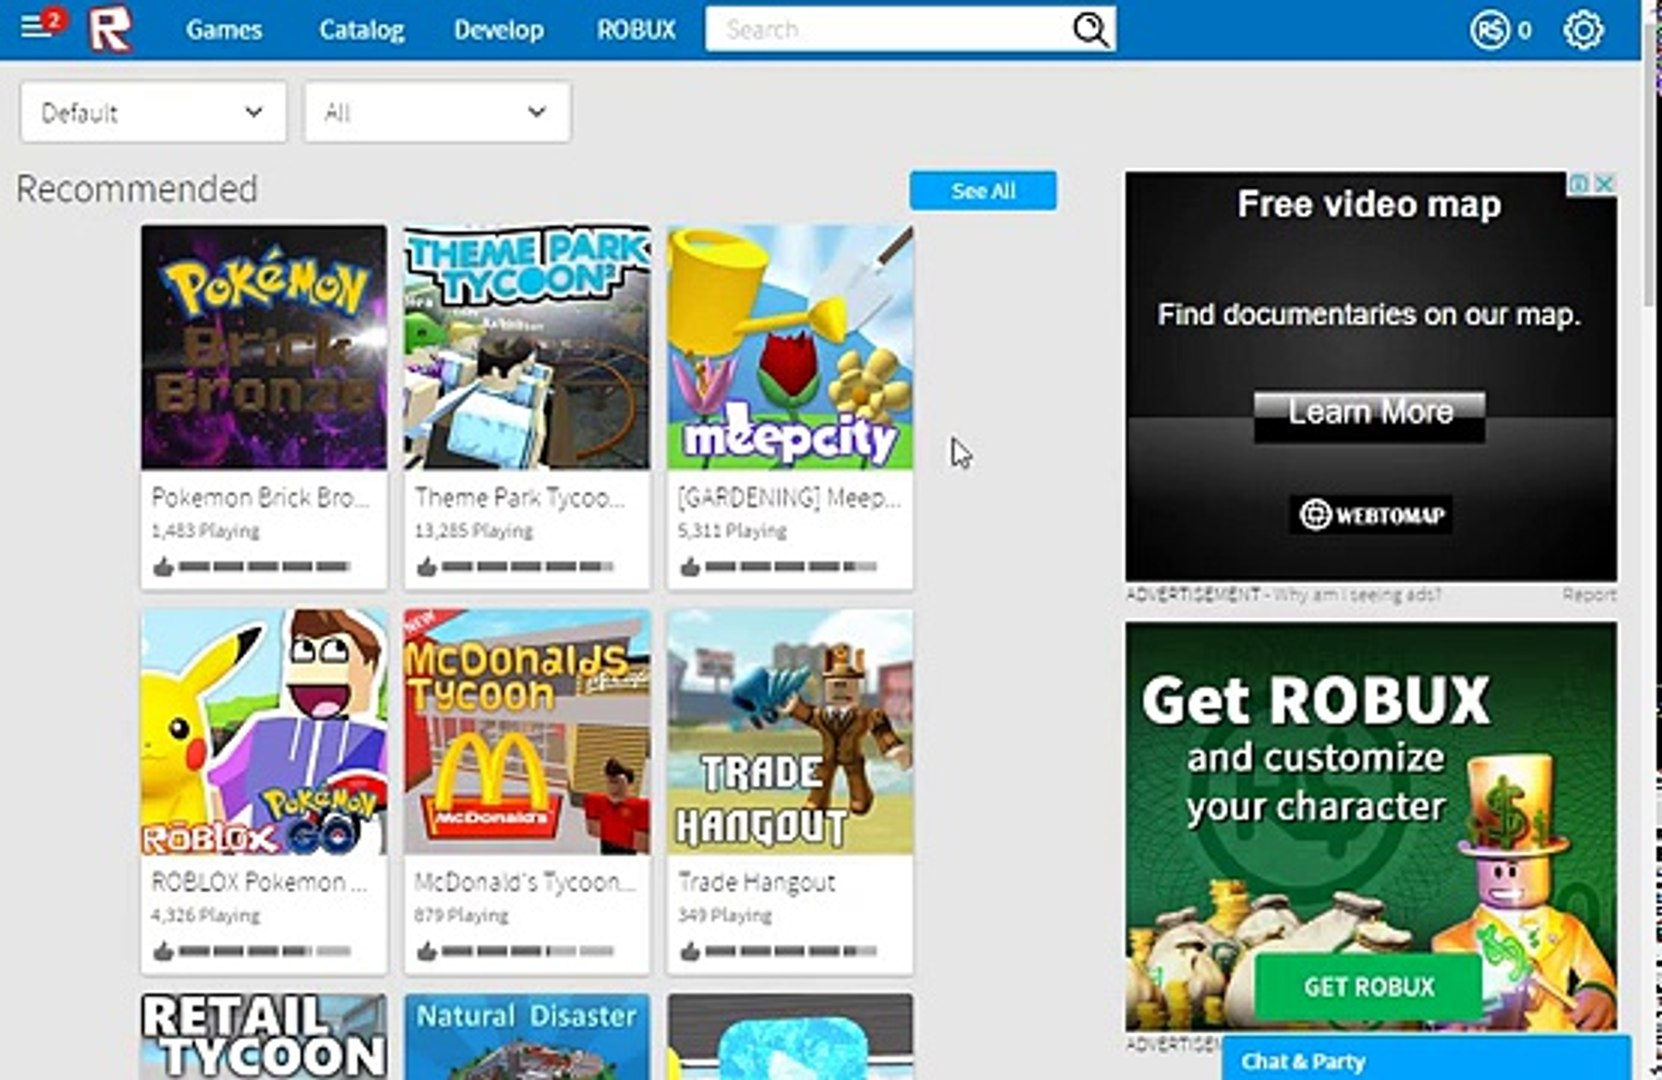 Roblox How To Make Ur Avatar Look Cool On Roblox Without Robux Or Bc - robux bc obc tbc gratis roblox